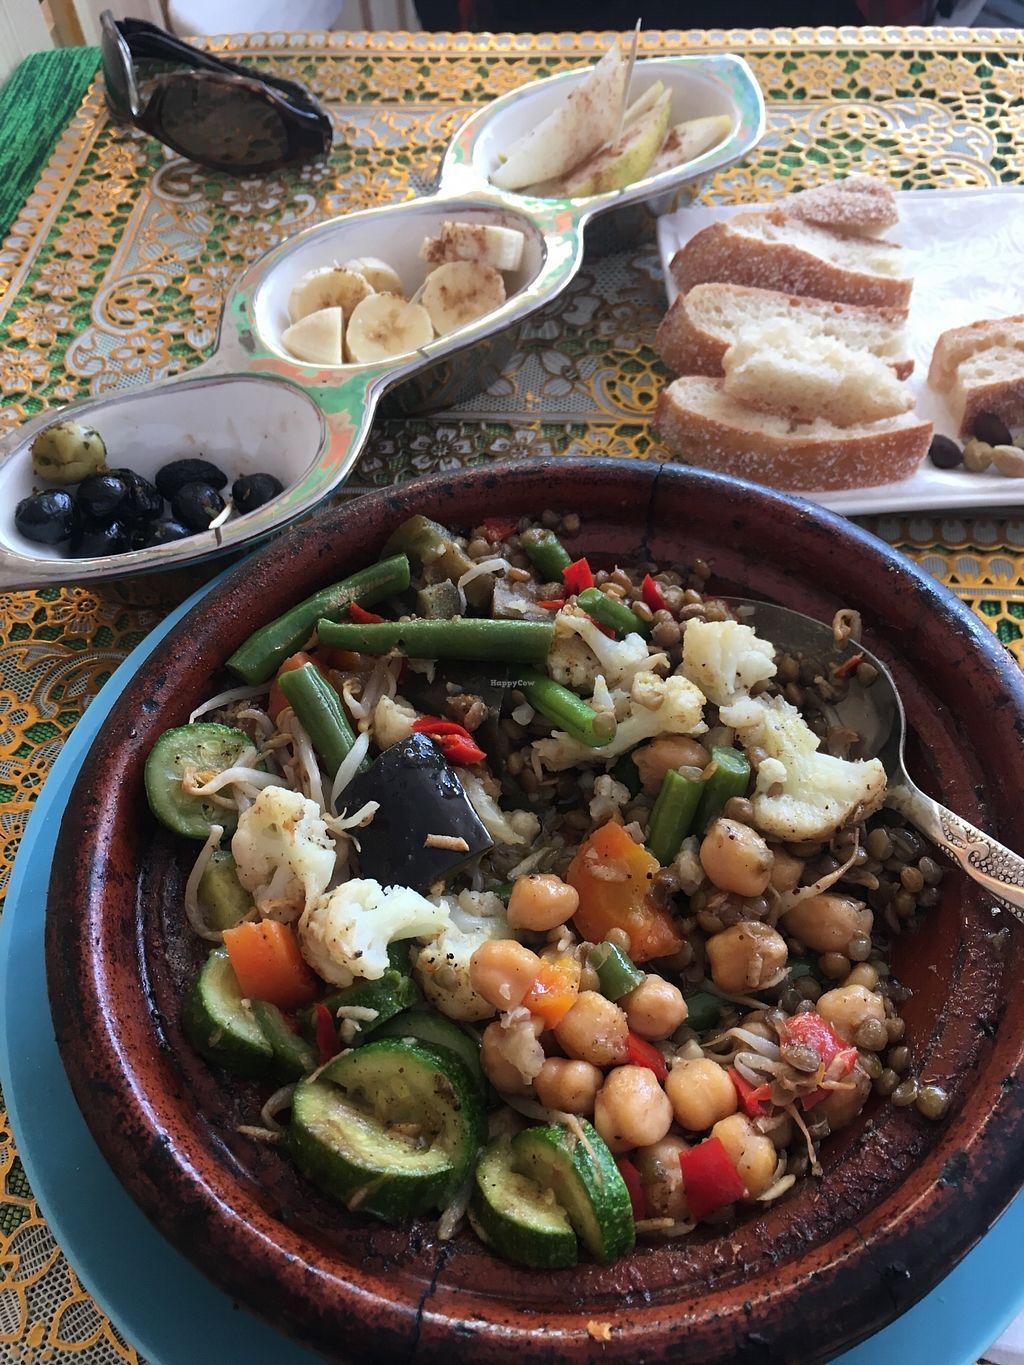 """Photo of Le Corail at Latifa  by <a href=""""/members/profile/Melboulet"""">Melboulet</a> <br/>Vegetarian Tagine  <br/> February 8, 2018  - <a href='/contact/abuse/image/87442/356414'>Report</a>"""